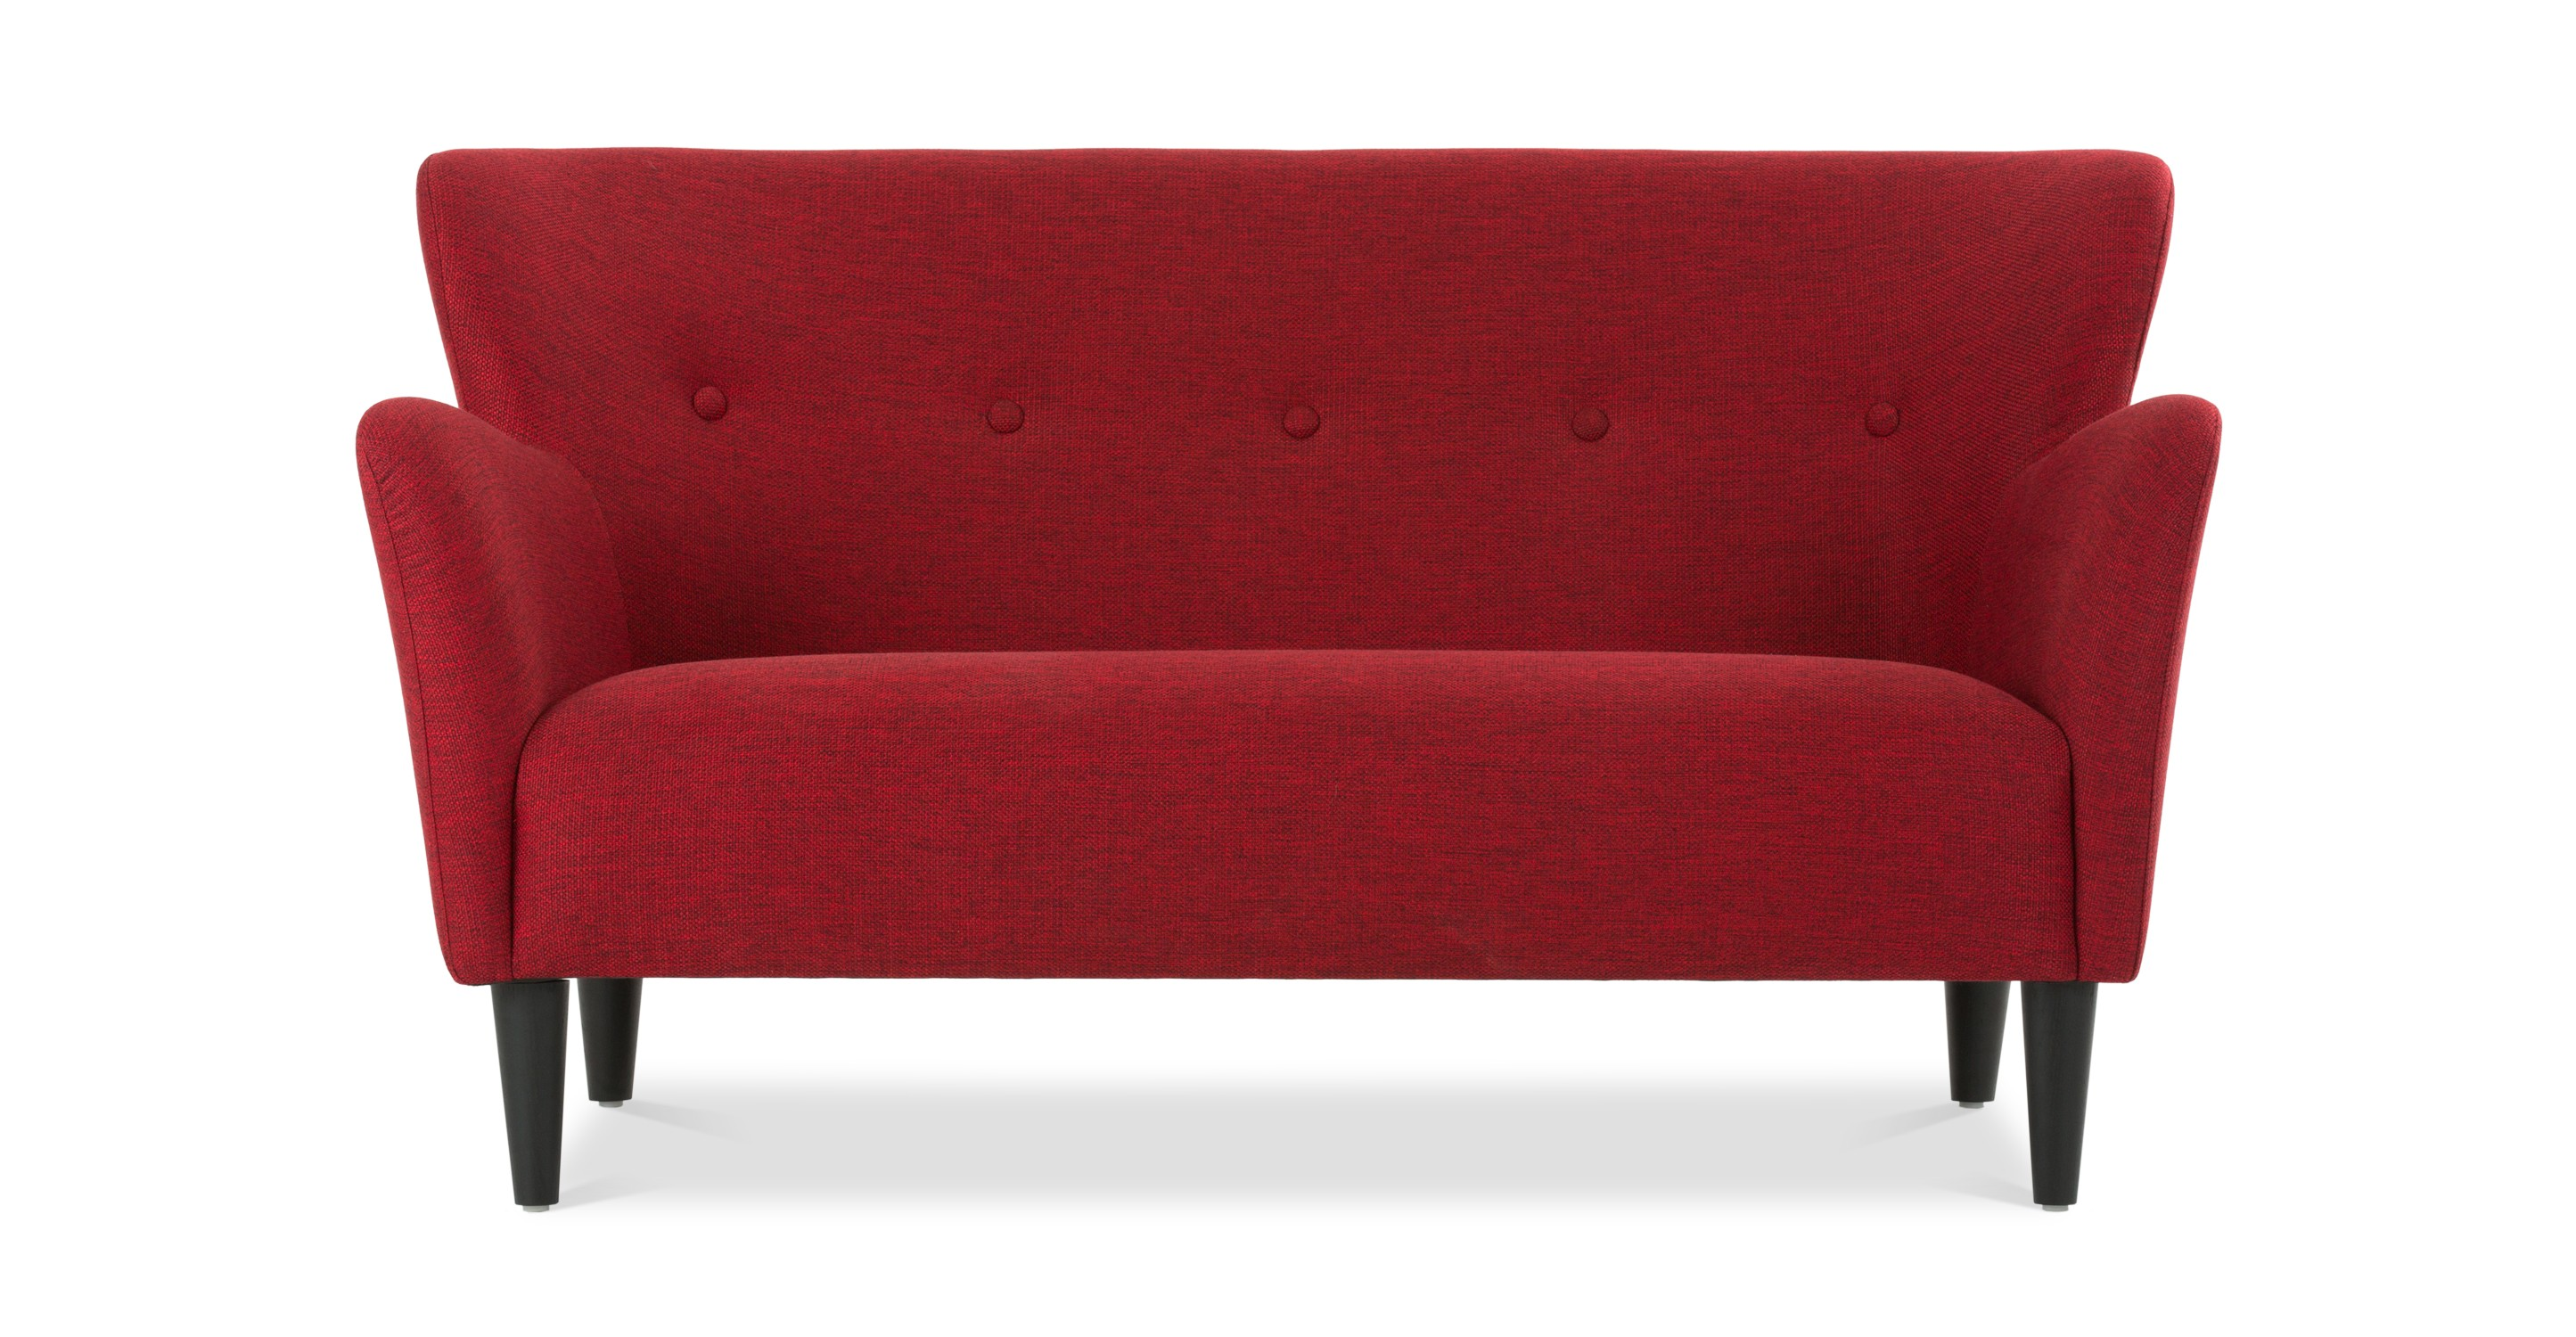 Happy picasso red loveseat loveseats article modern mid century and scandinavian furniture Couches and loveseats